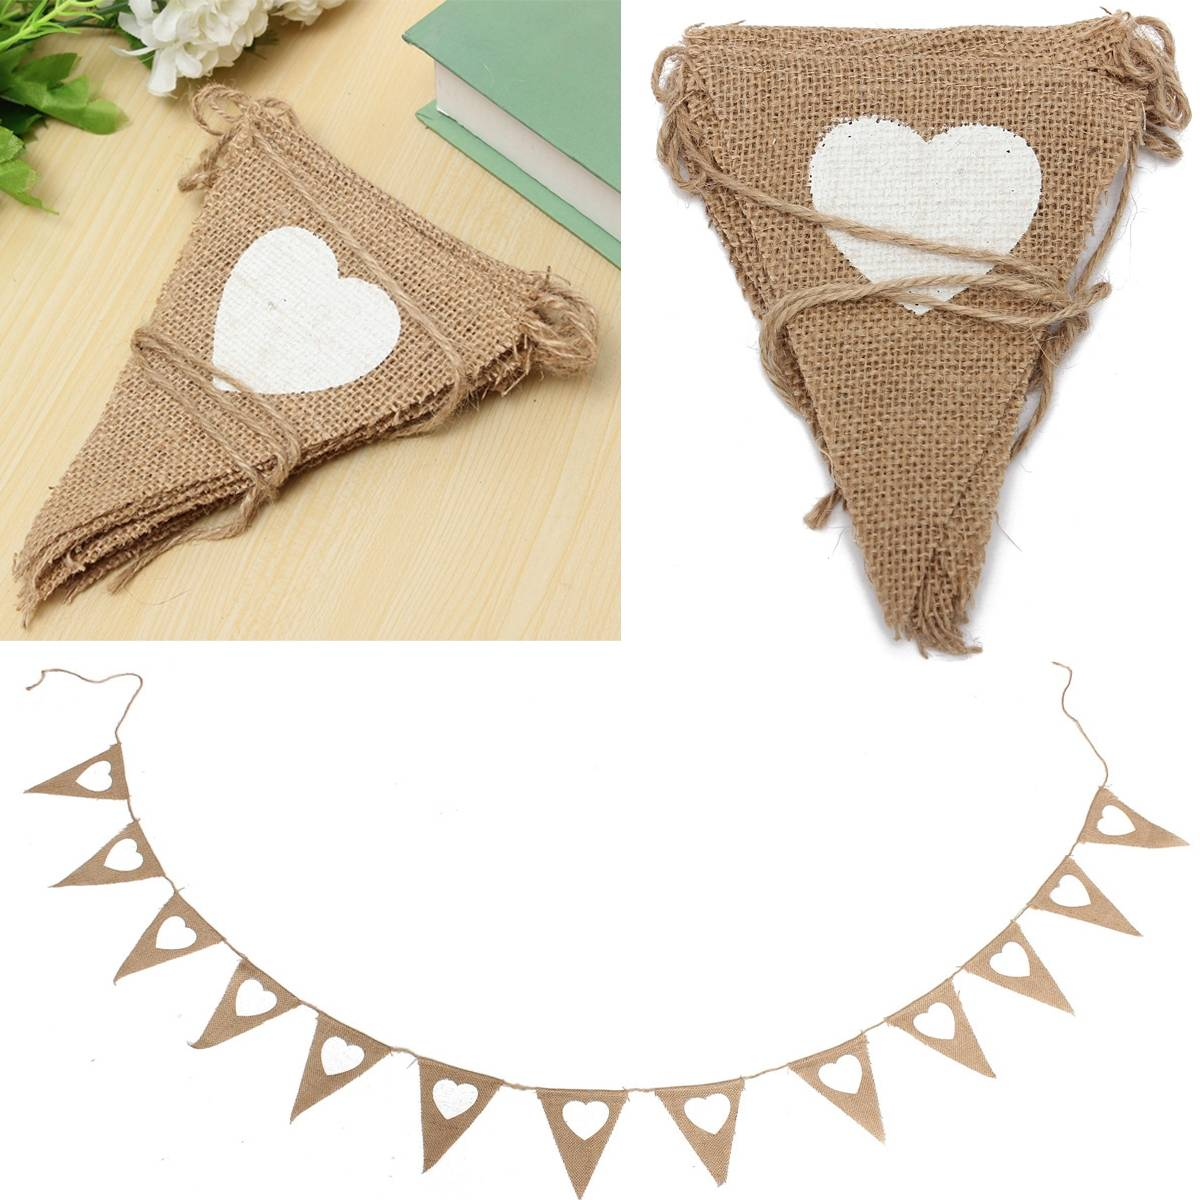 Vintage White Heart Hessian Burlap Flags Bunting Banner Event Supplies Wedding Church Birthday Party Decoration 2.8M 13Flags